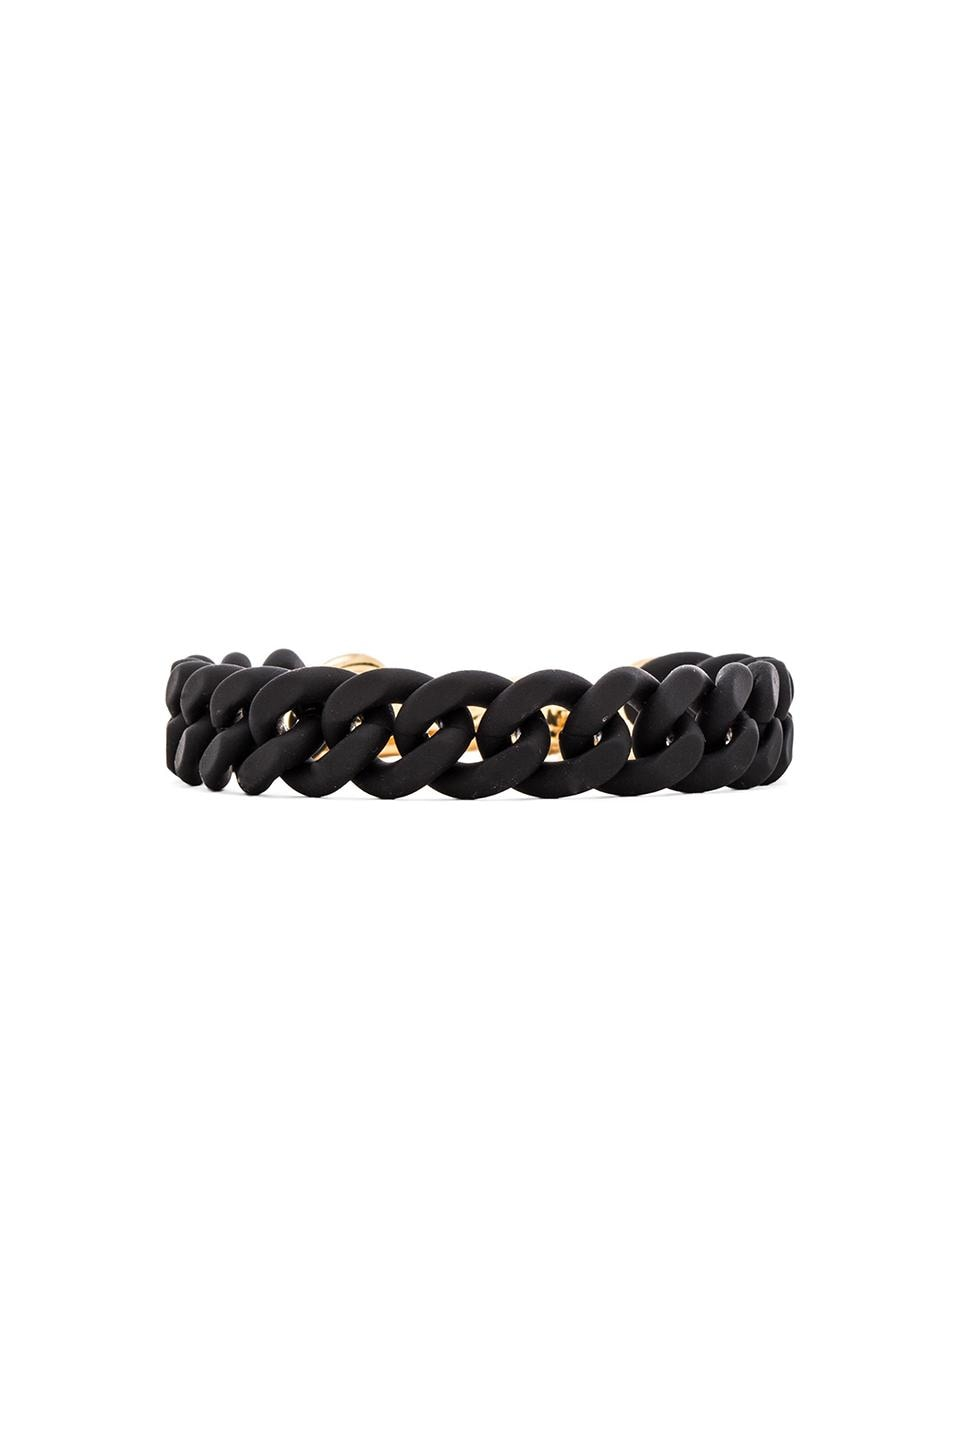 Marc by Marc Jacobs Rubber Chain Bracelet in Black